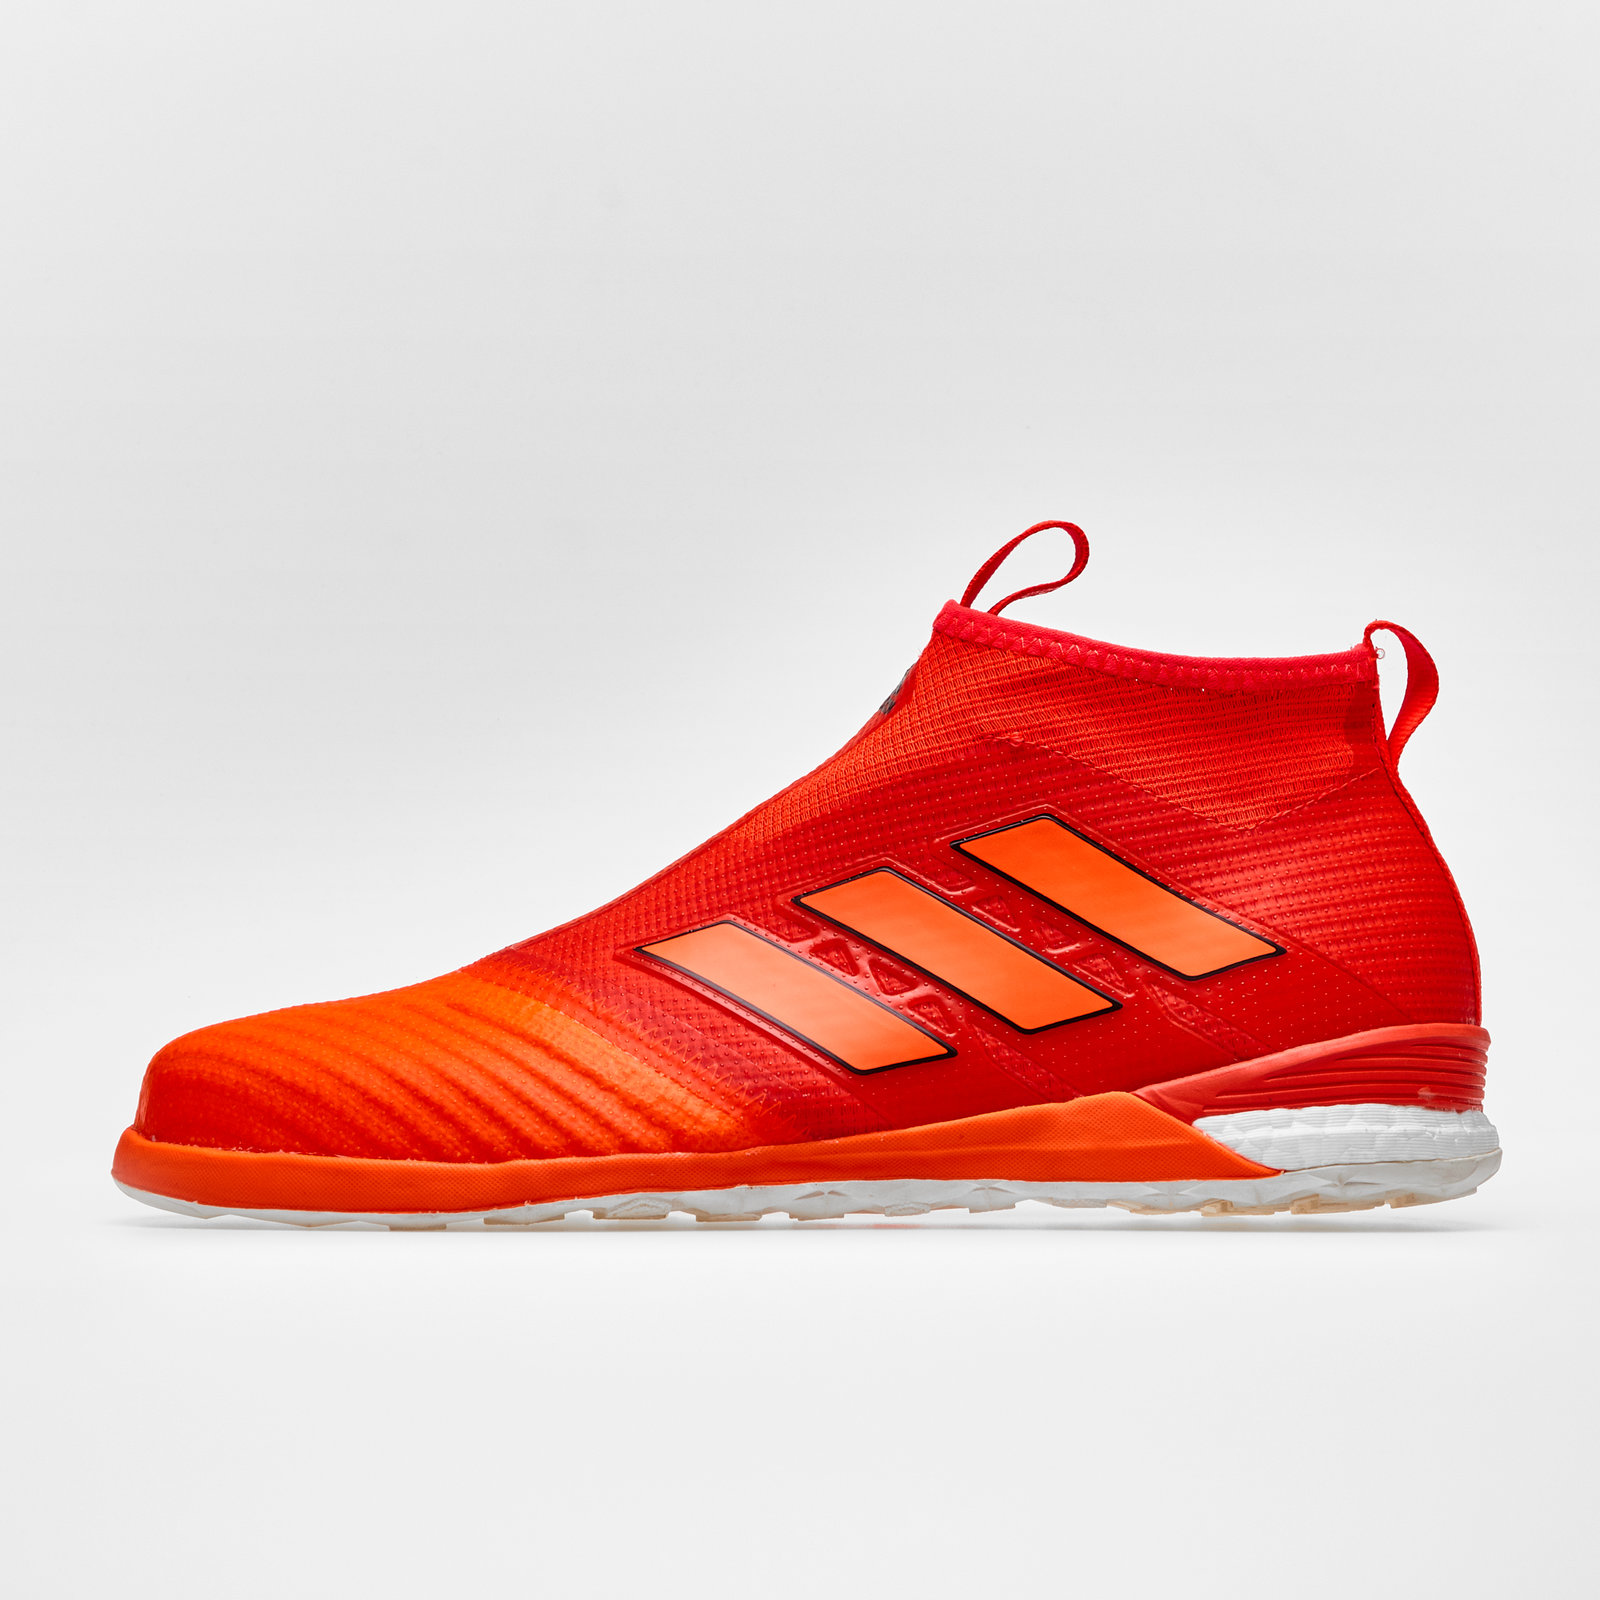 Image of Ace Tango 17+ Purecontrol Indoor Football Trainers